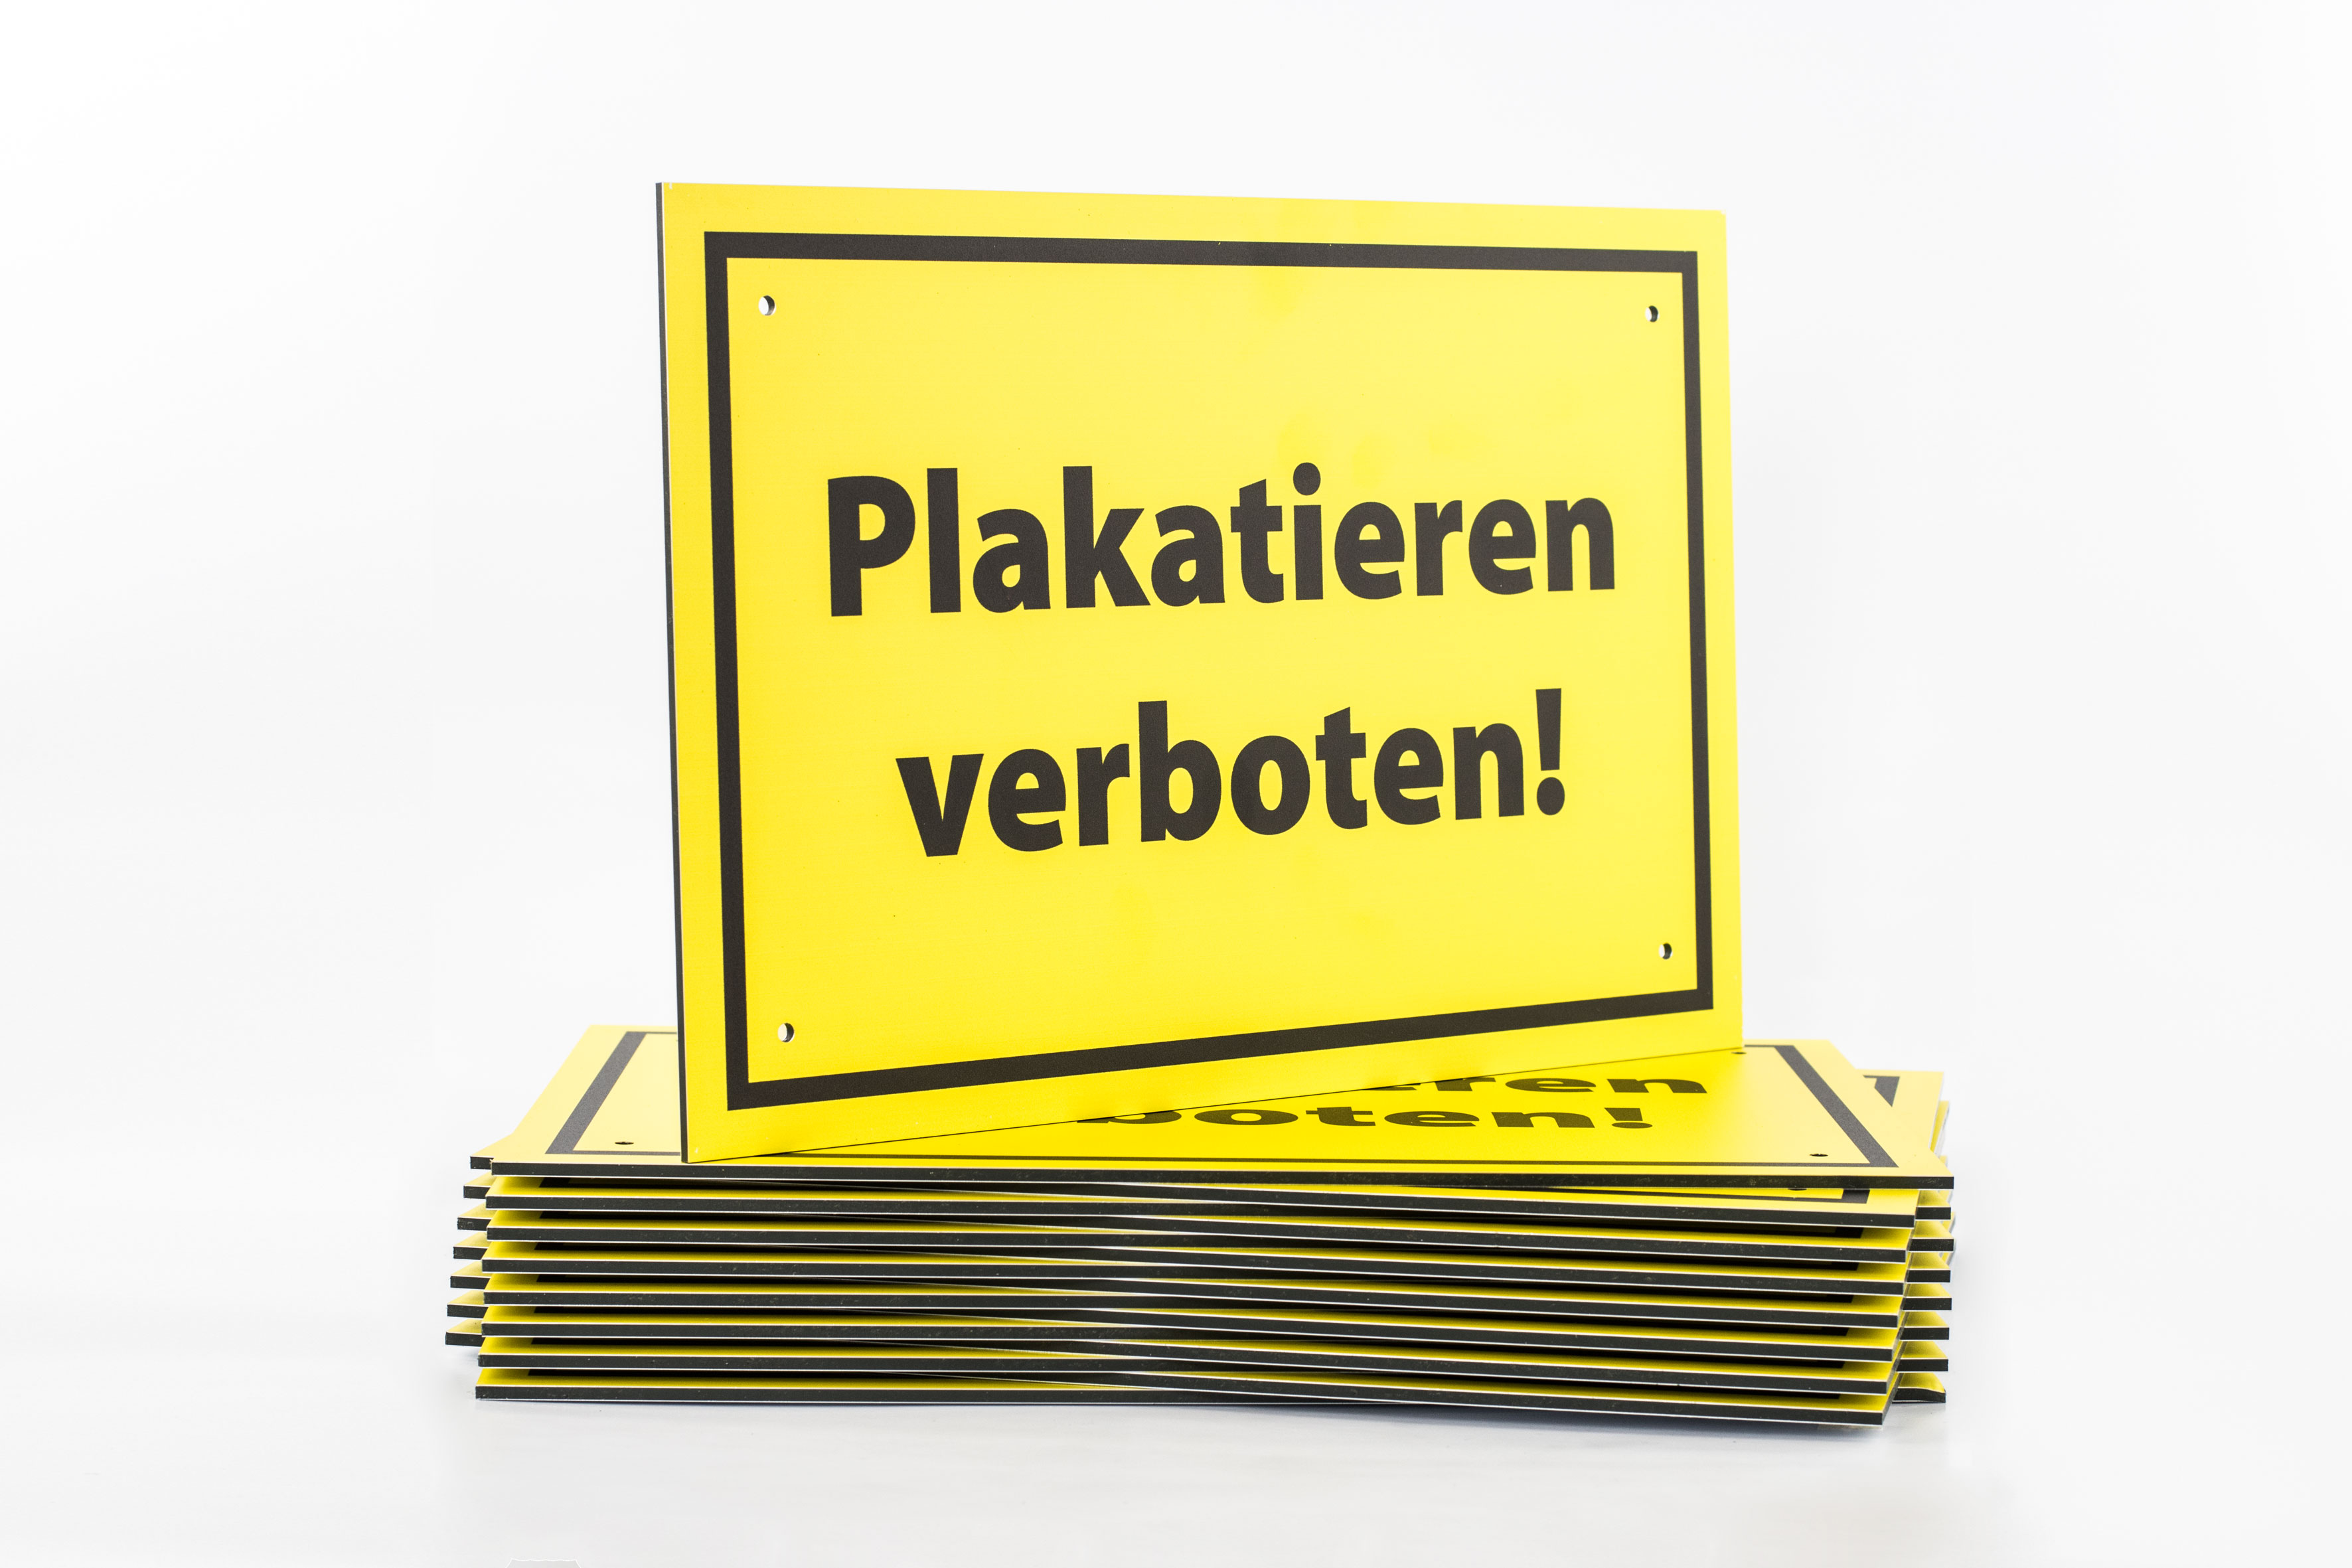 plakatieren verboten rot warnschild verbotsschild plakate. Black Bedroom Furniture Sets. Home Design Ideas